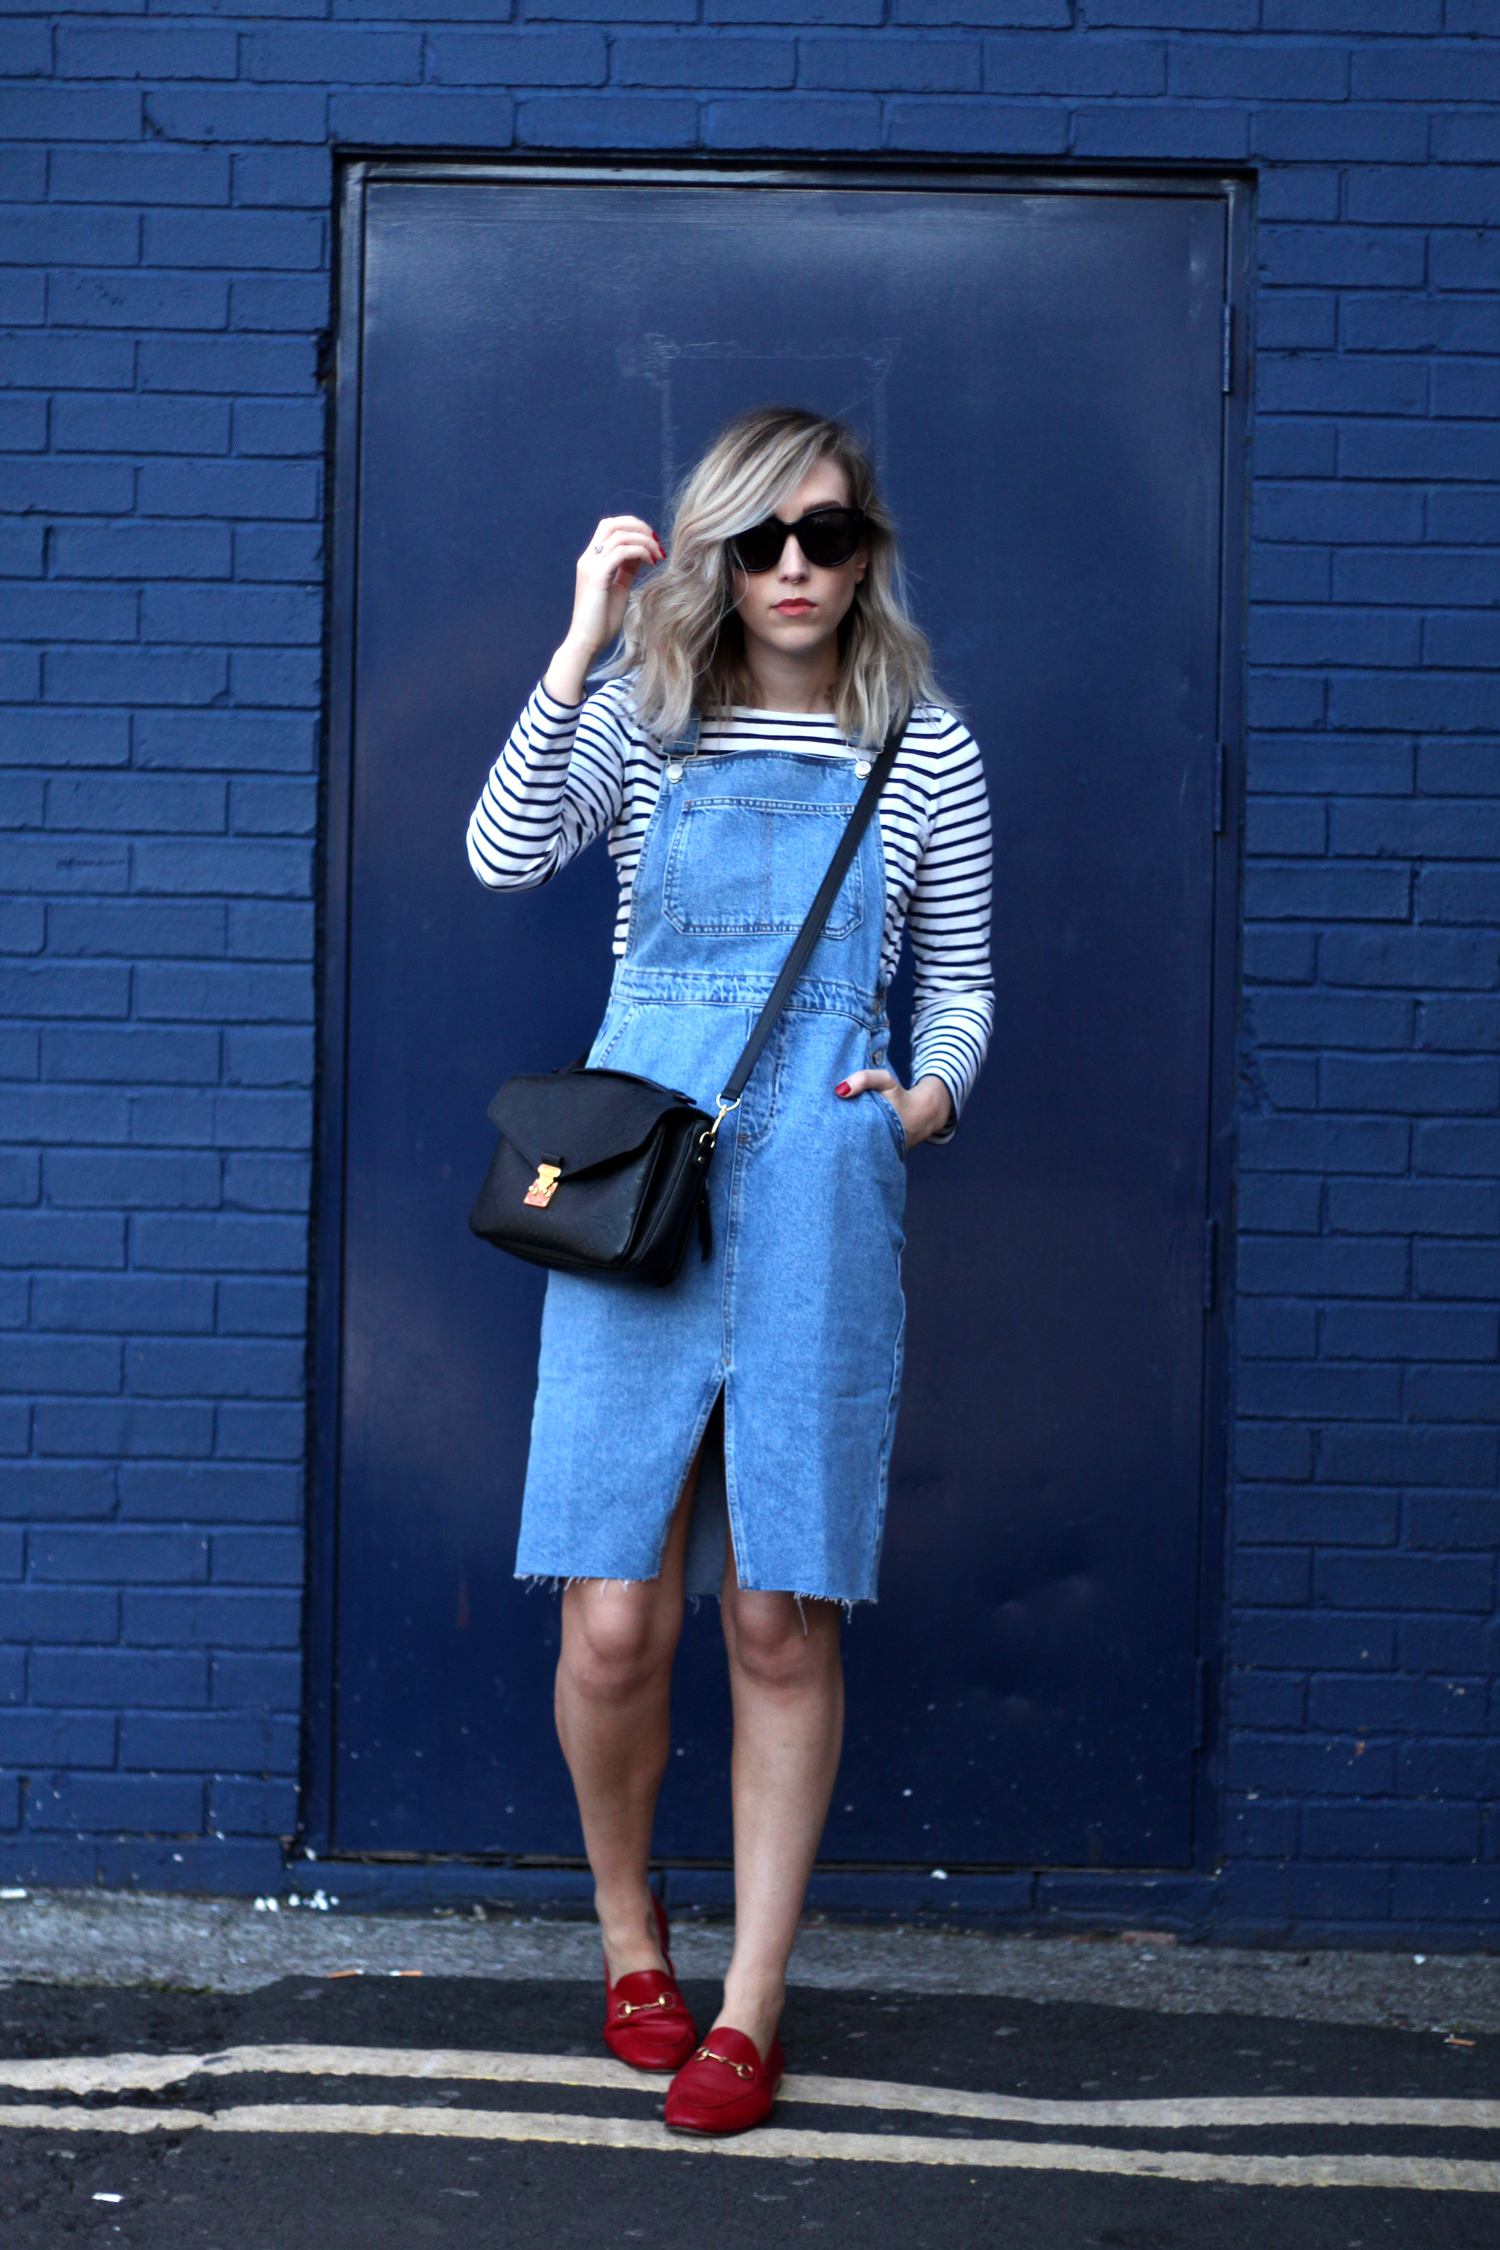 topshop-denim-pencil-dungaree-dress-stripe-top-red-gucci-loafers-1